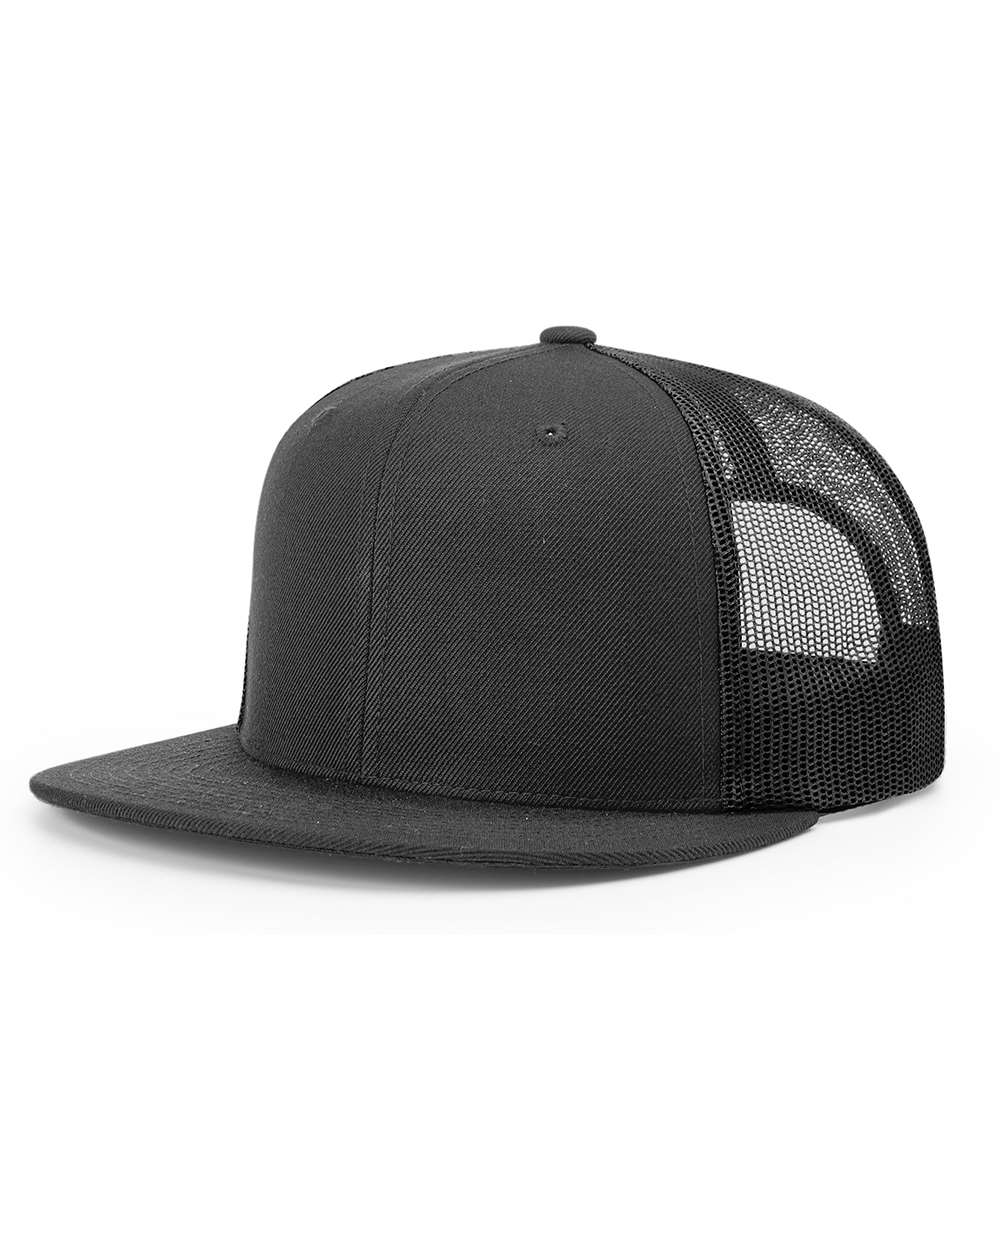 Richardson 511 - Wool Blend Flat Bill Trucker